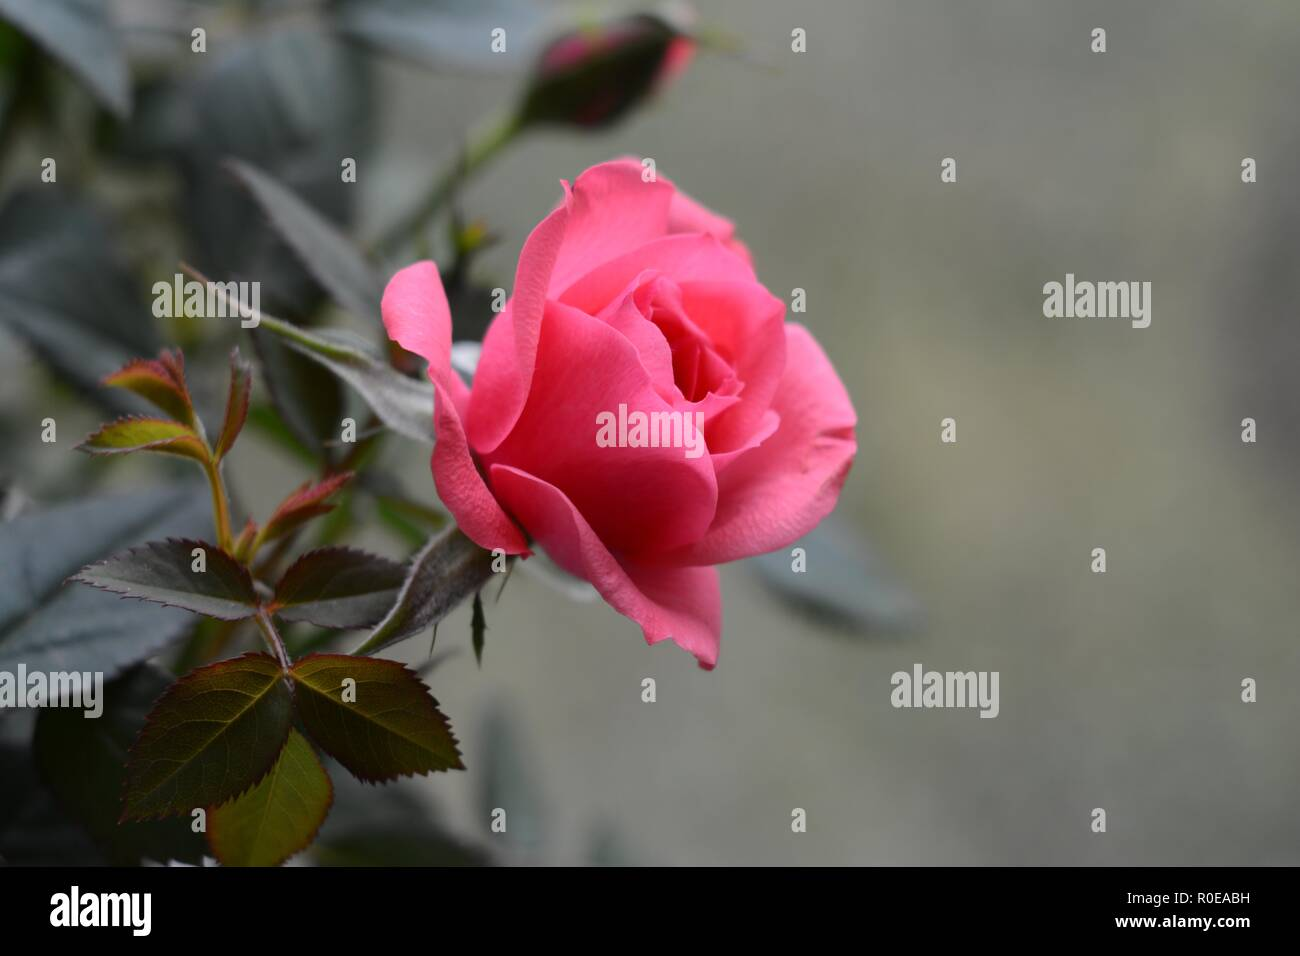 Bright pink rose on grey background Stock Photo